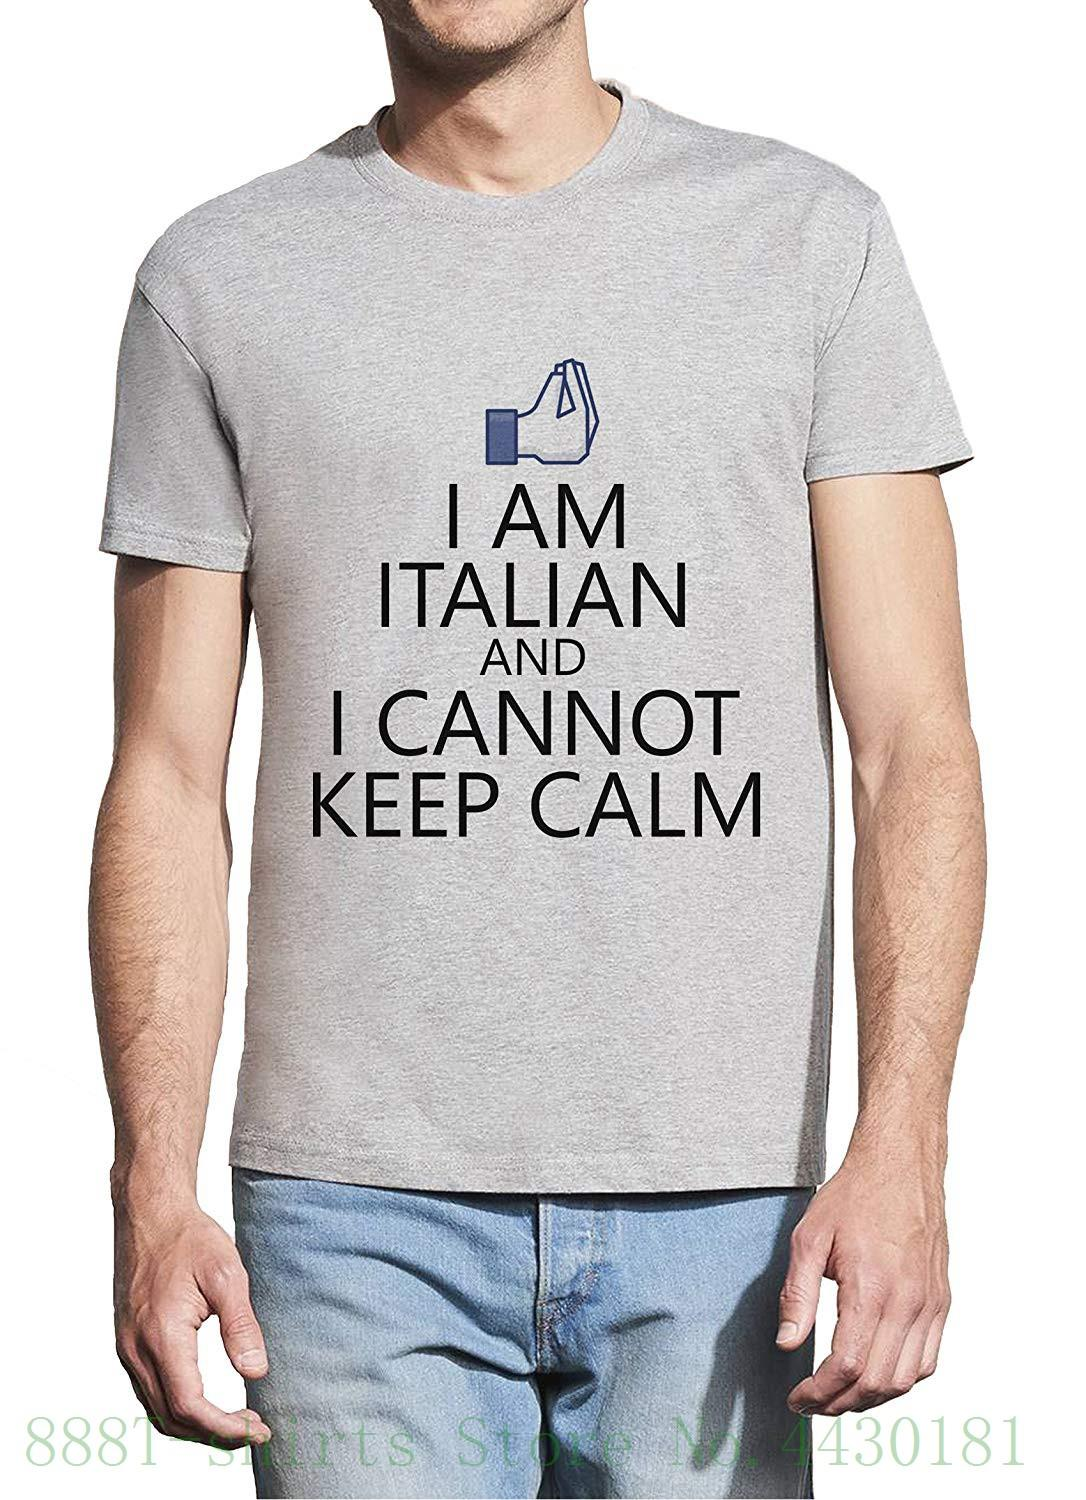 1d77a62af I Am Italian And I Cannot Keep Calm Homme White T Shirt 2018 New Short  Sleeve Men Collared T Shirts Funky Tshirts From Aaa888teesstore, $24.2|  DHgate.Com